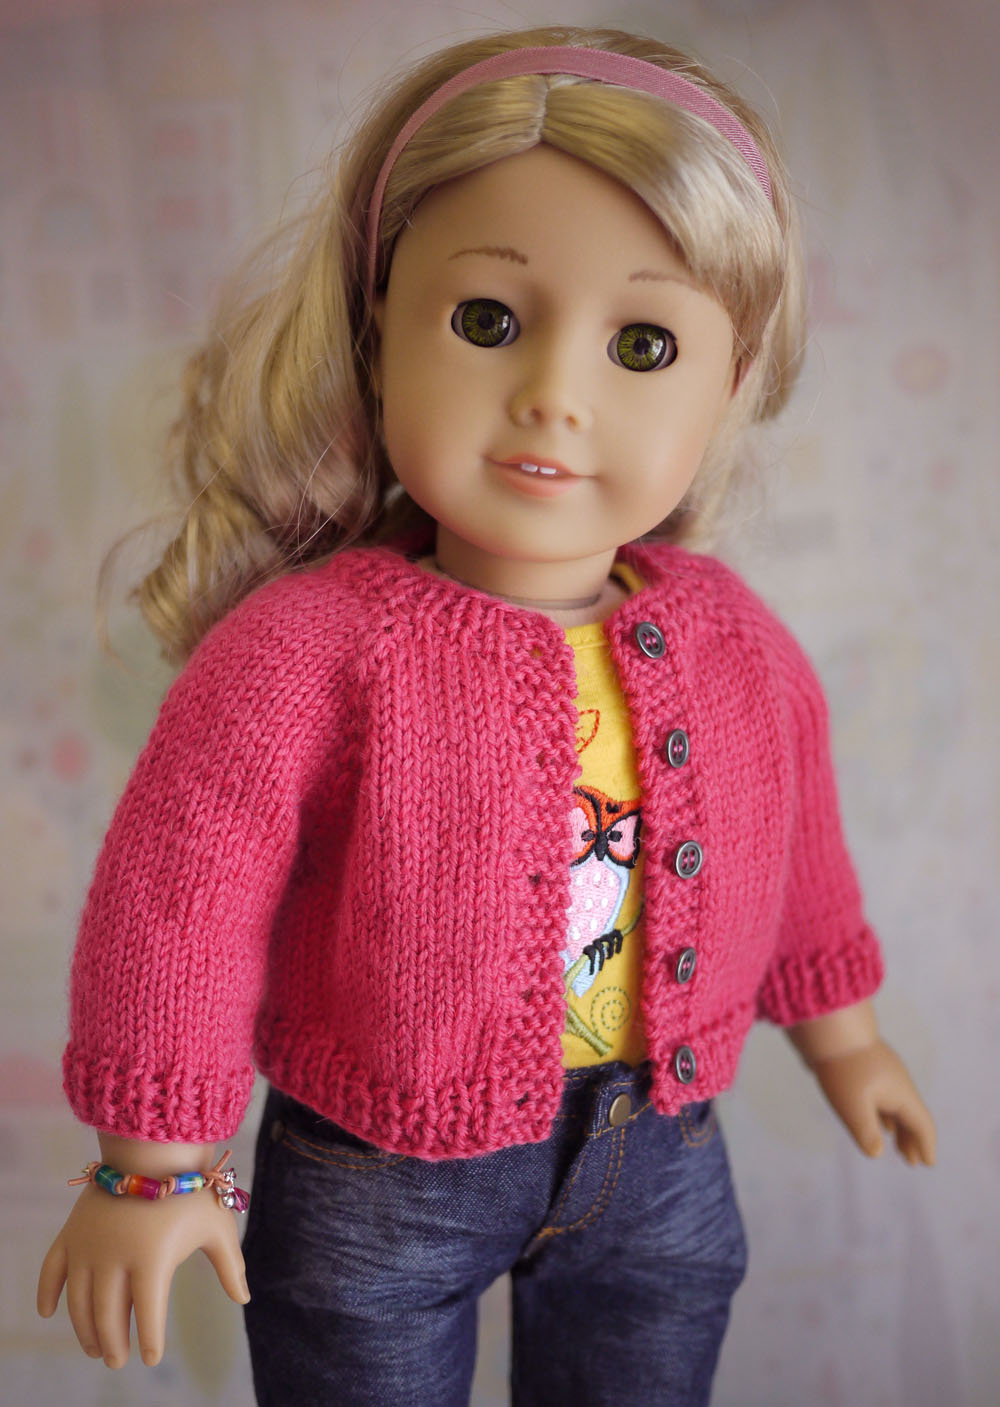 Knitting Pattern For Doll Sweater : American Girl Doll Cardigan Sweater Knitting Pattern Cindy Rice Designs